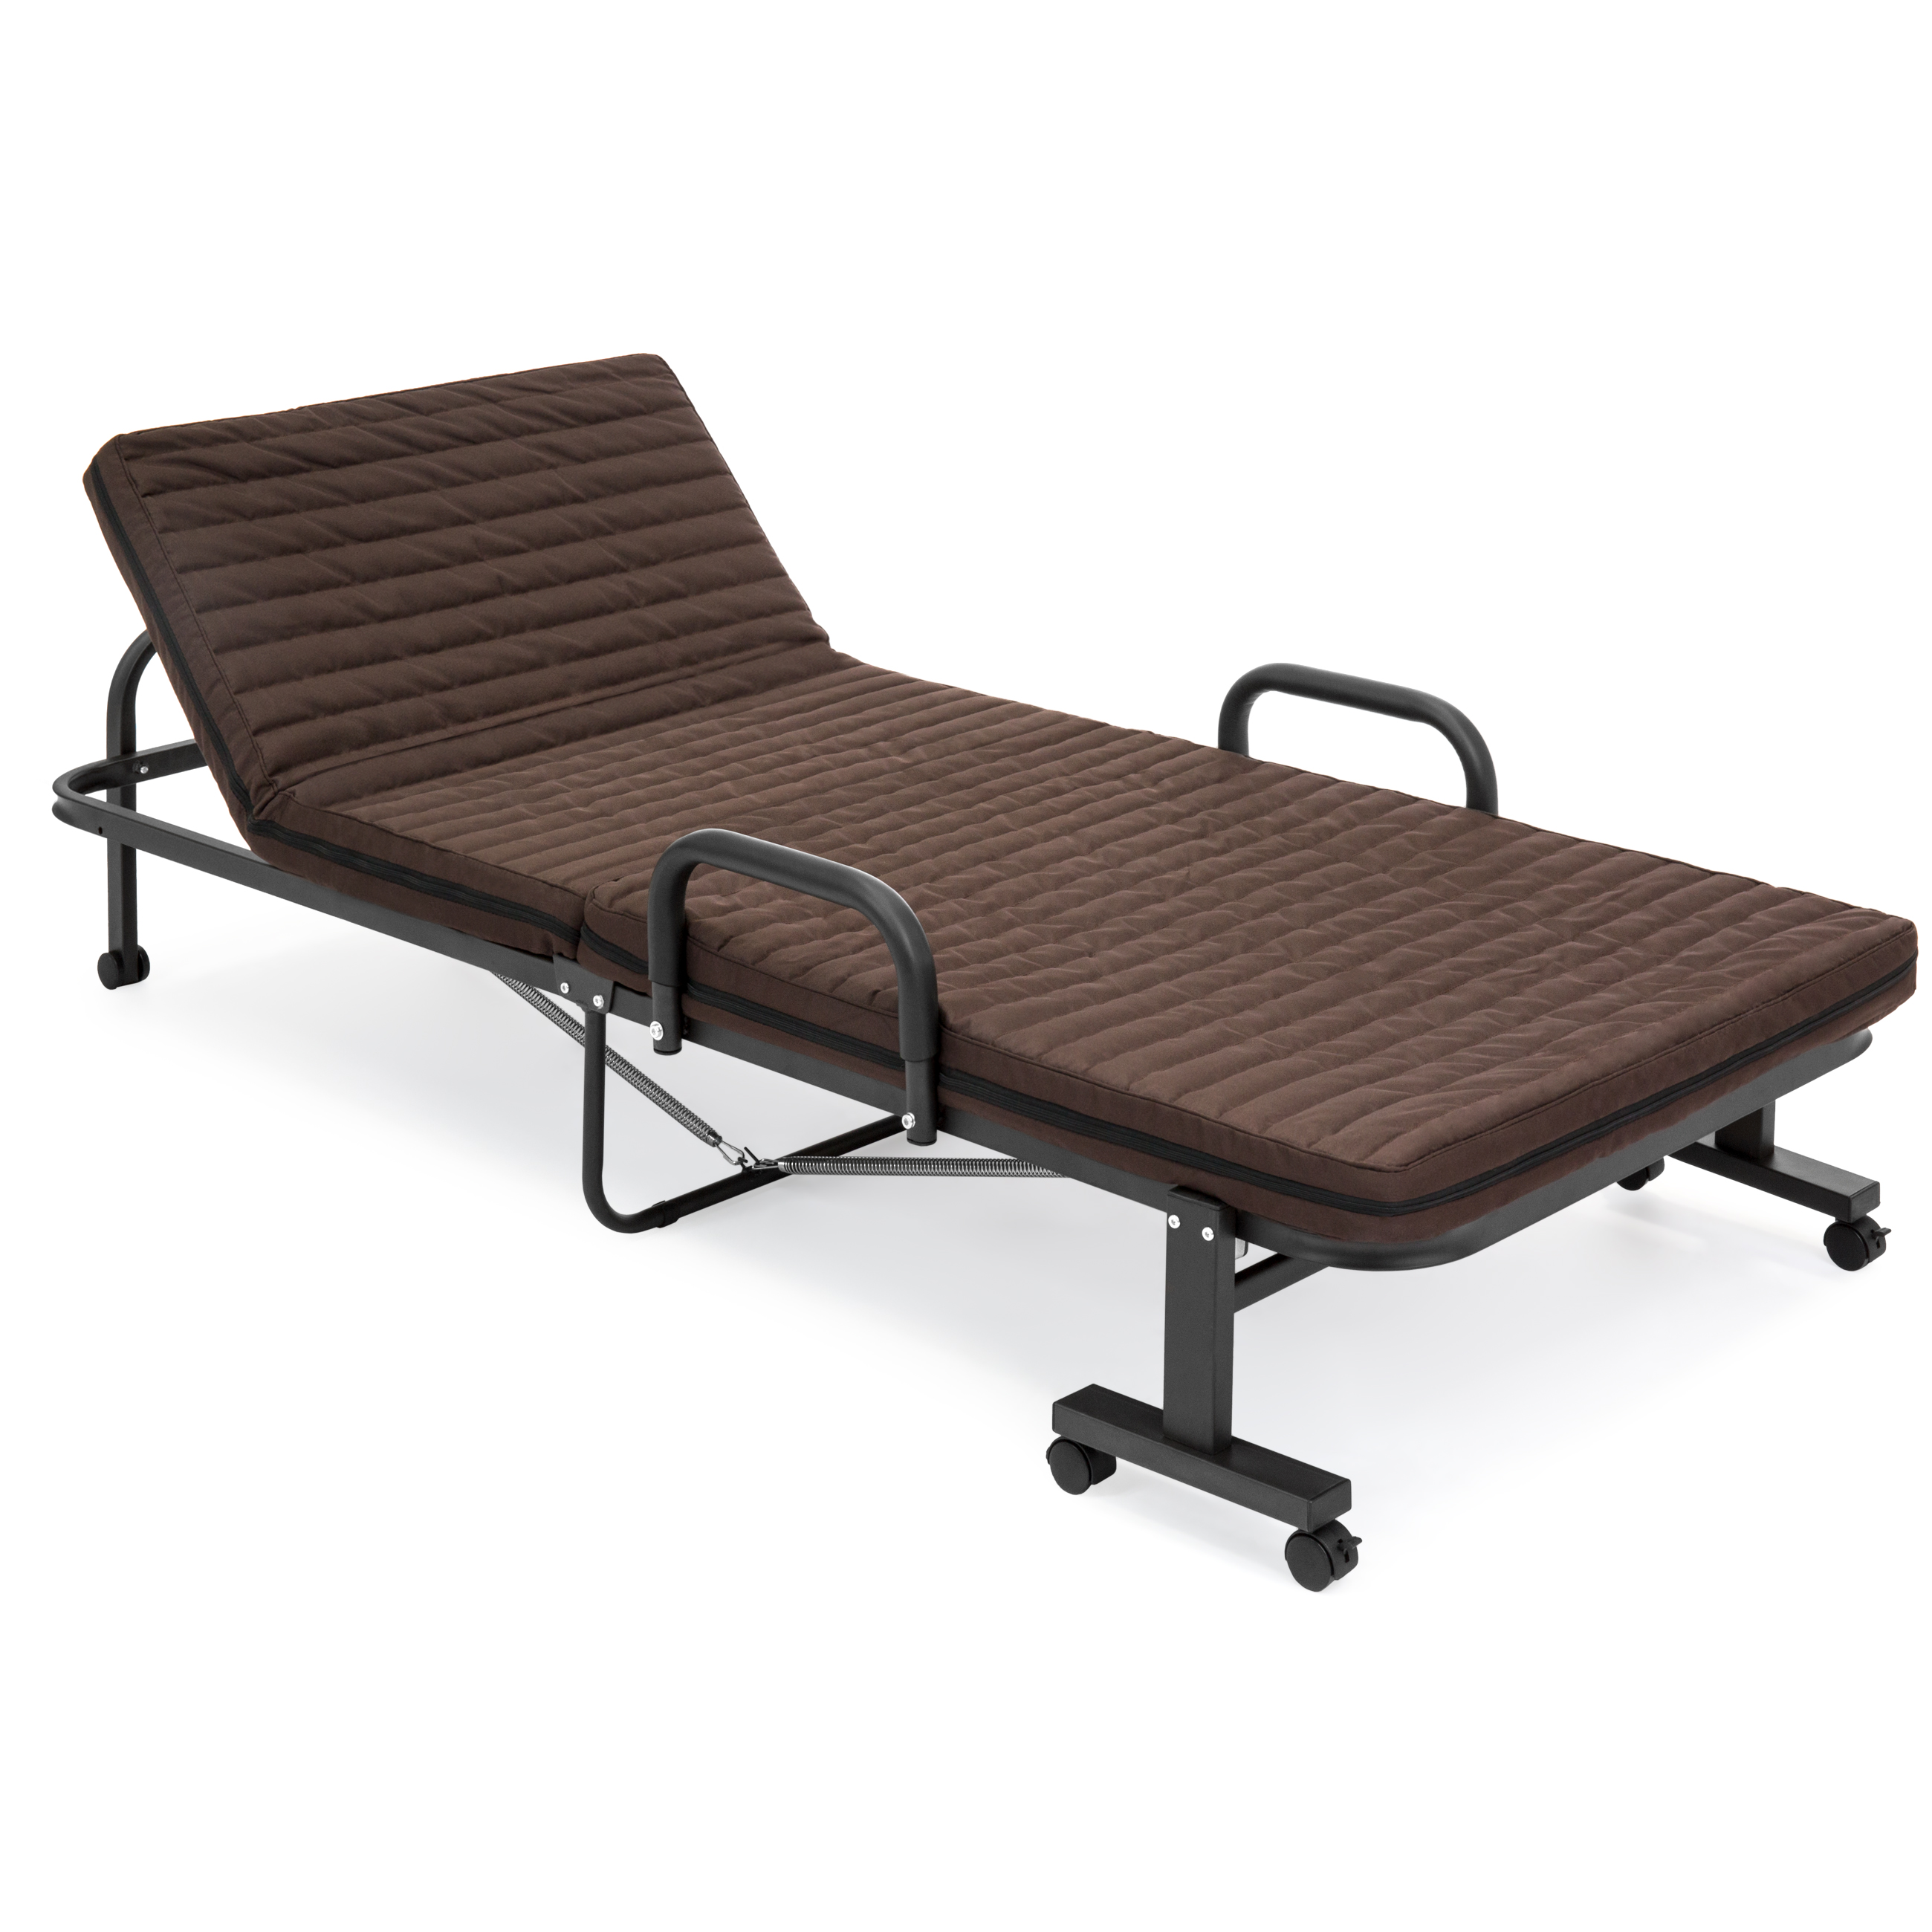 """Best Choice Products 74"""" Folding Twin Mattress w/ Portable Wheels Single Bed (Brown)"""